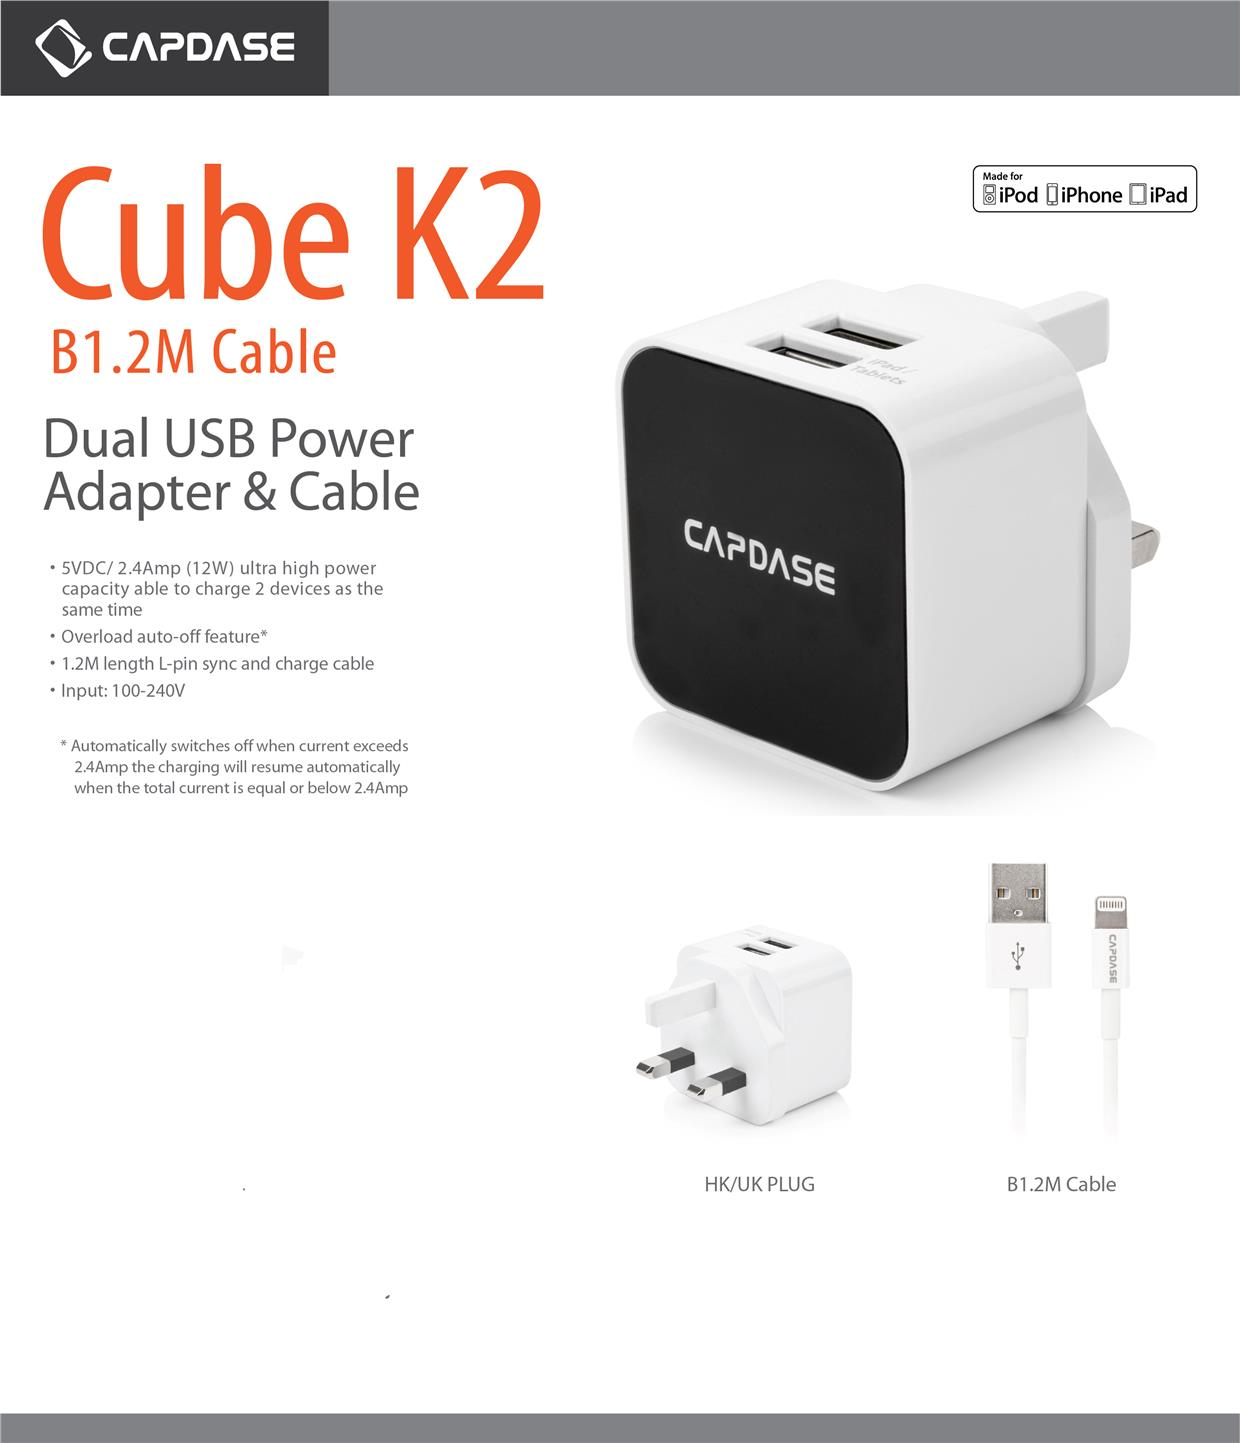 Bdotcom = Capdase Cube K2 Dual USB Power Adaptor and Lightning Cable